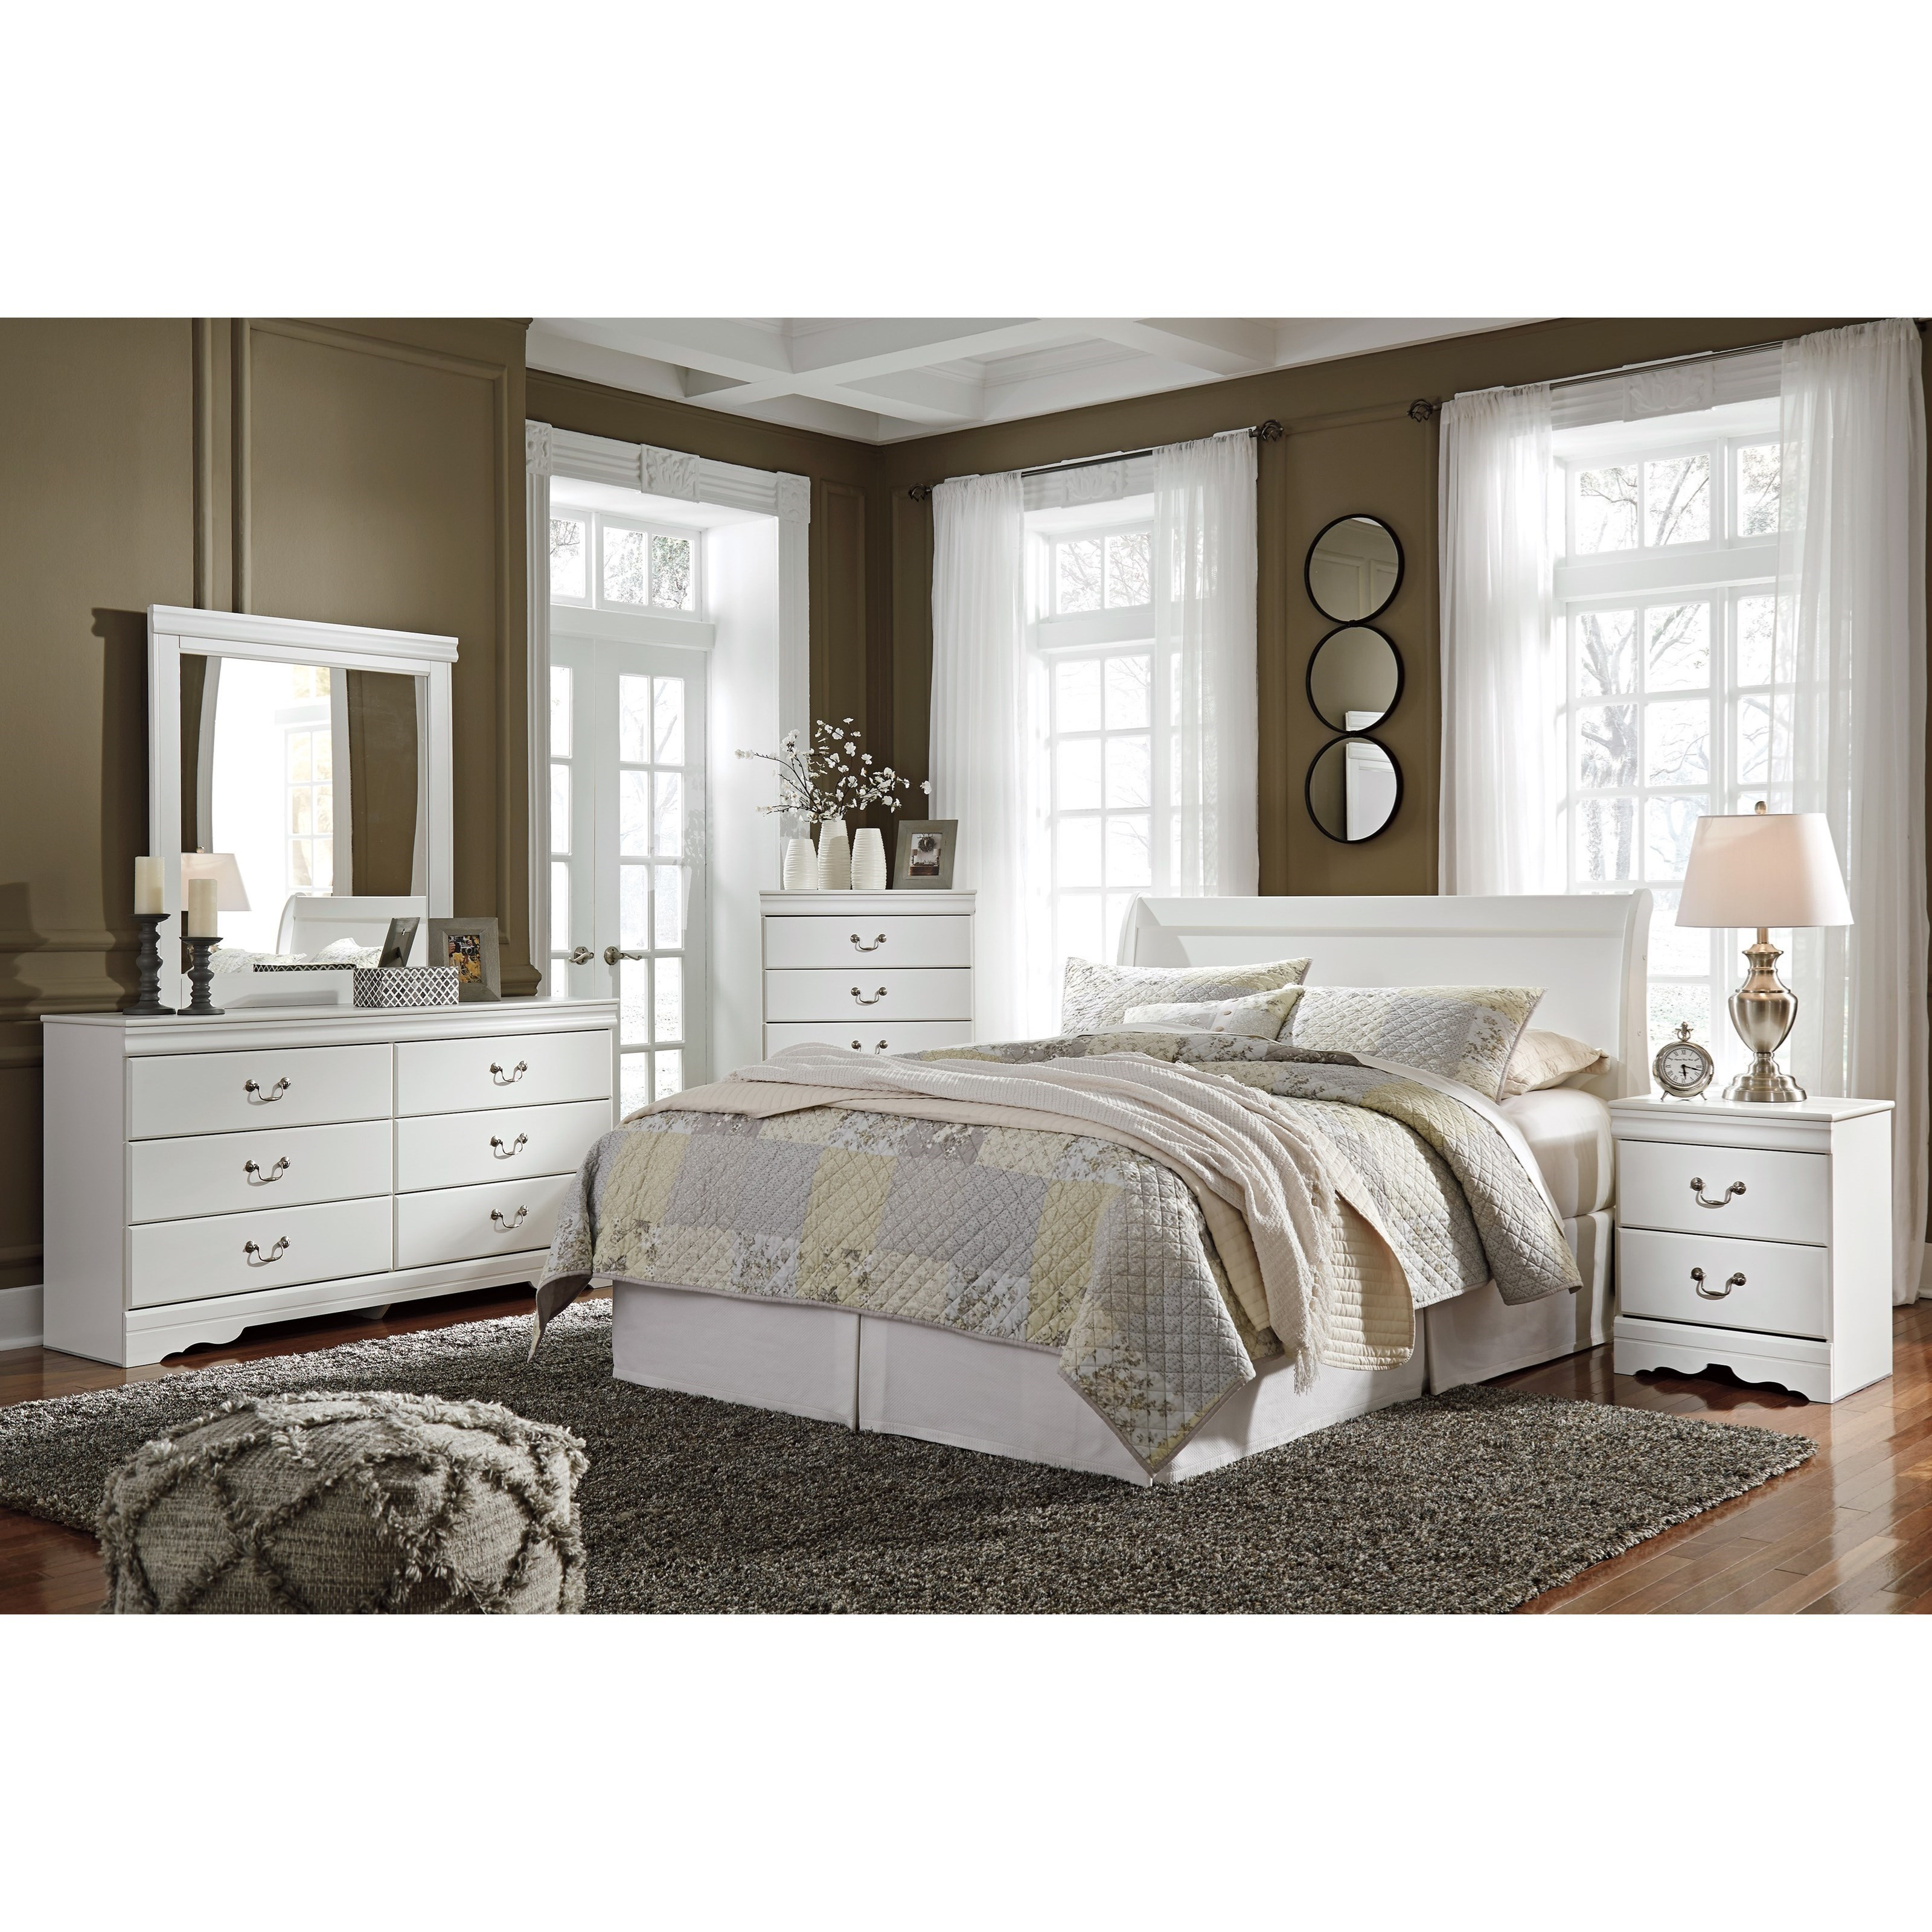 Anarasia Queen Bedroom Group by Signature Design by Ashley at Northeast Factory Direct